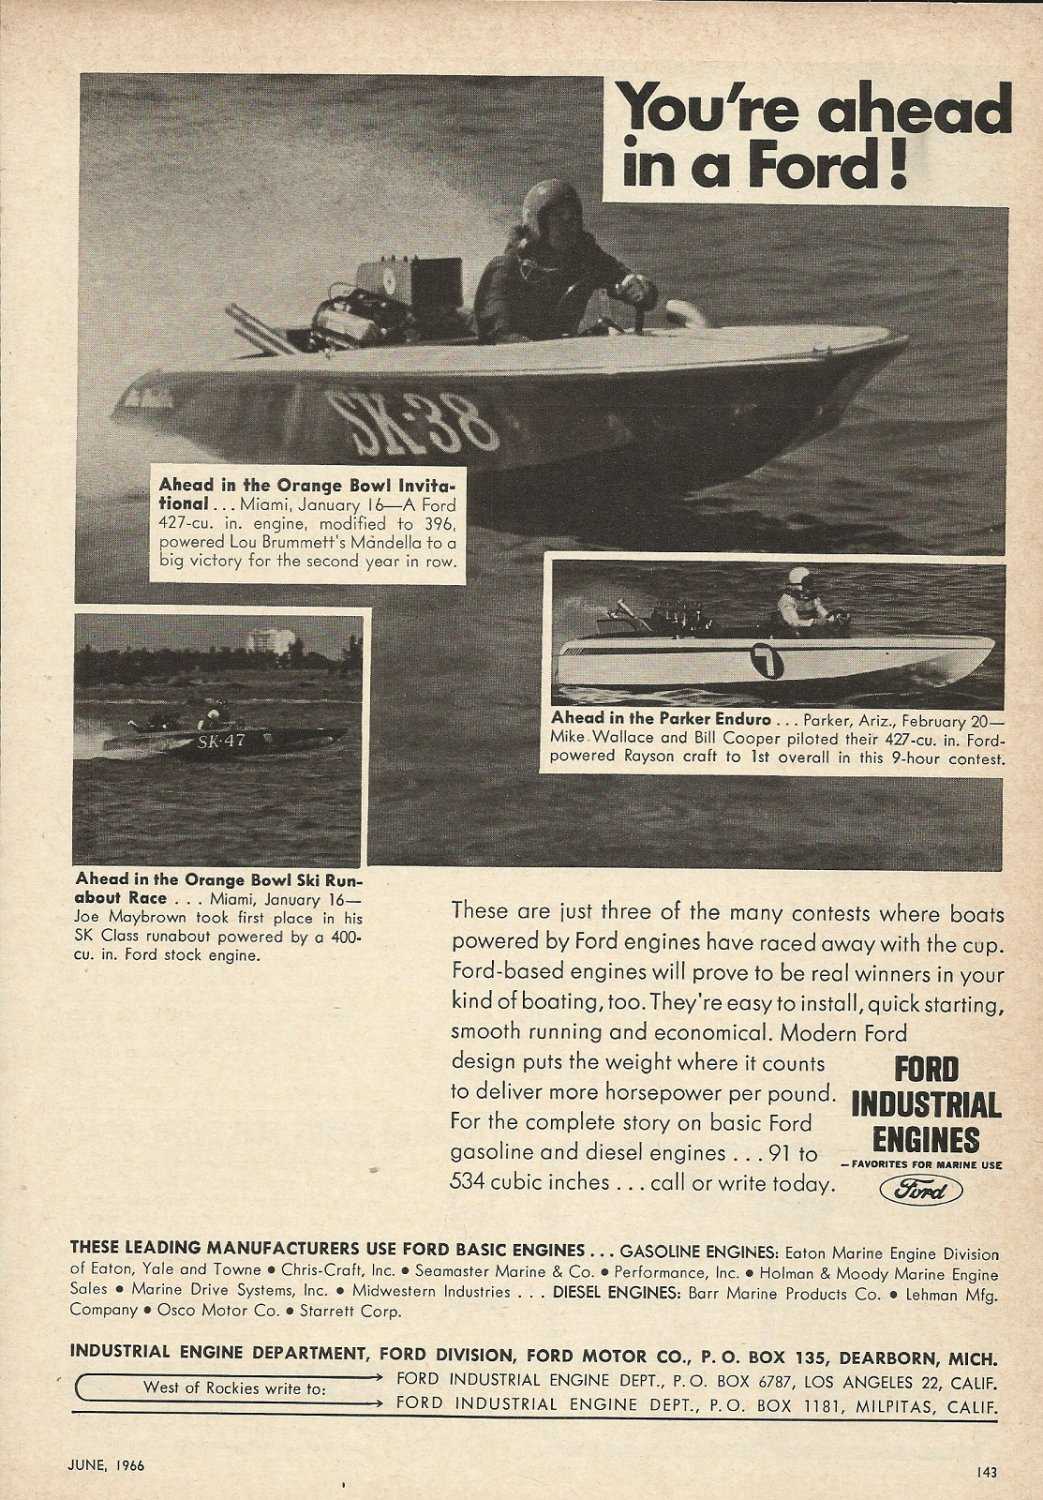 1966 Ford Marine Engines Ad- 3 Racing Boats